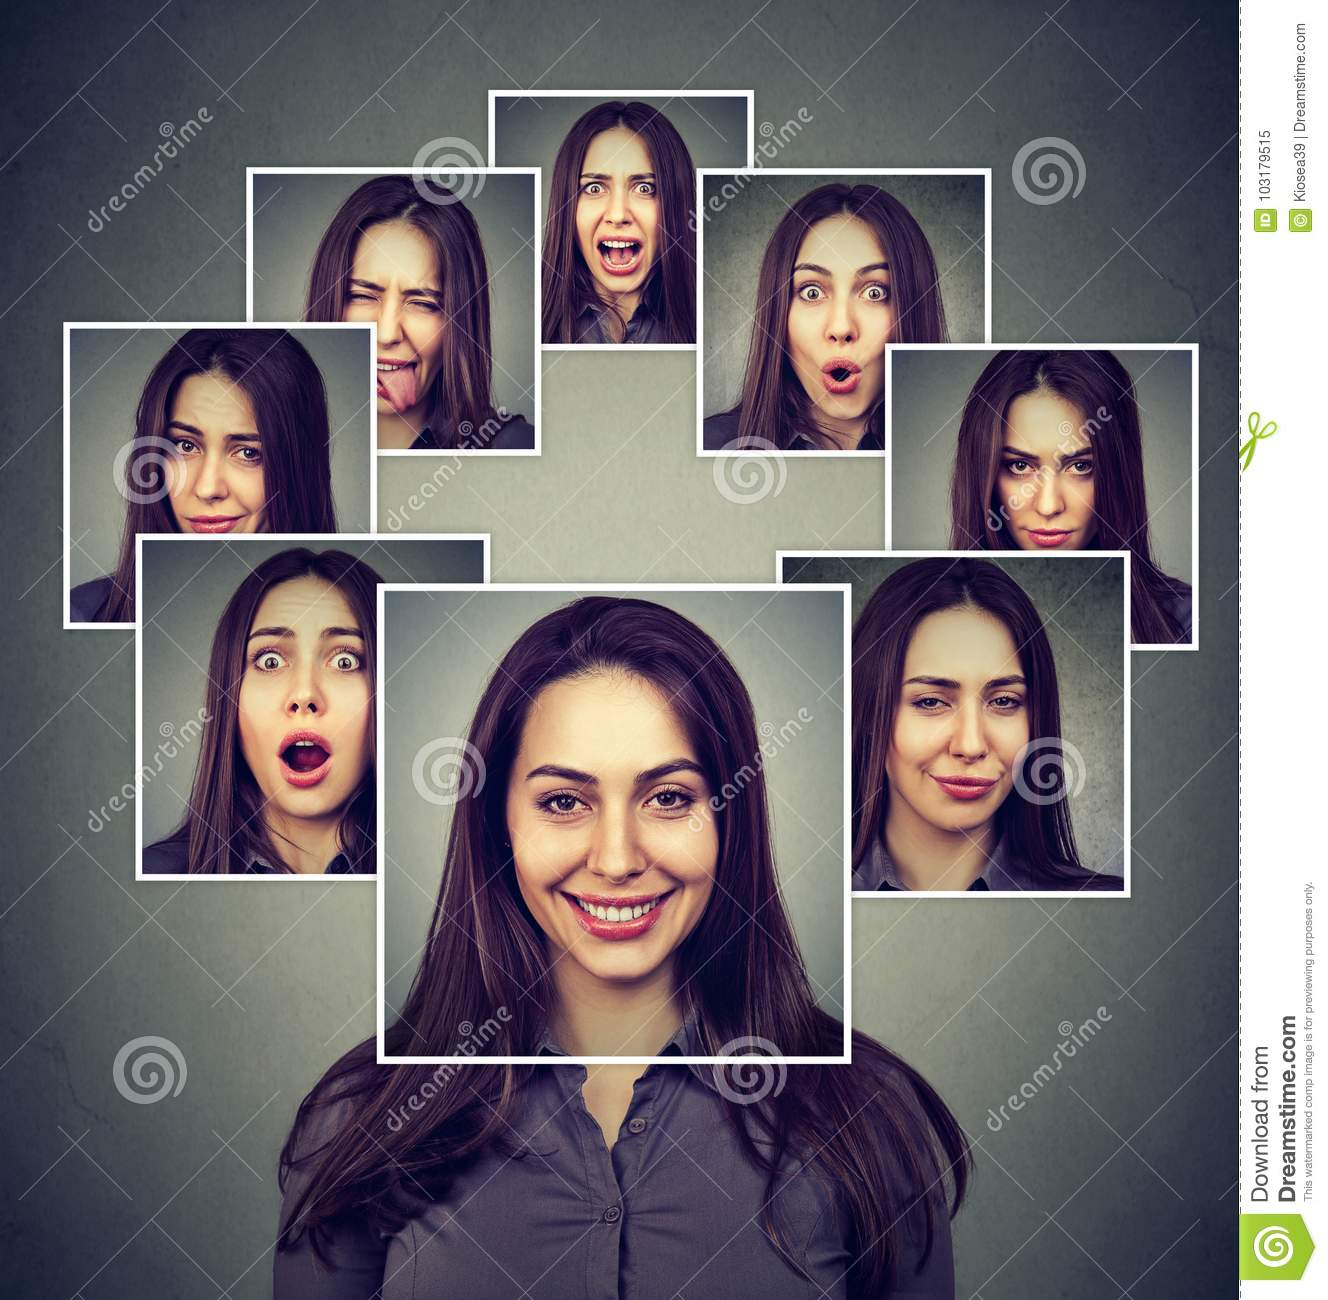 Happy masked woman expressing different emotions